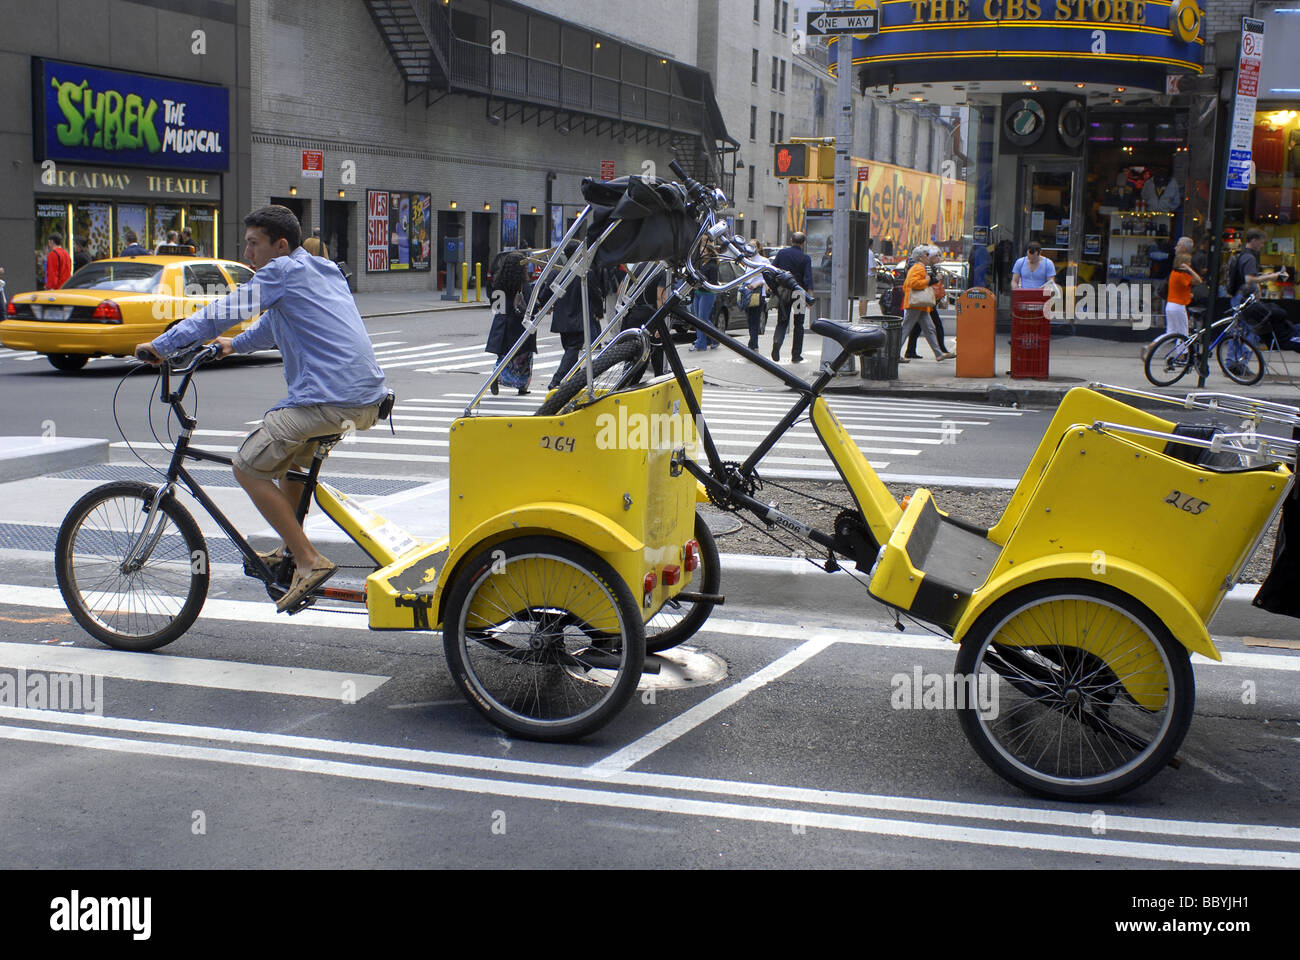 6c3635e6d89 A pedicab driver tows another pedicab in midtown in New York - Stock Image